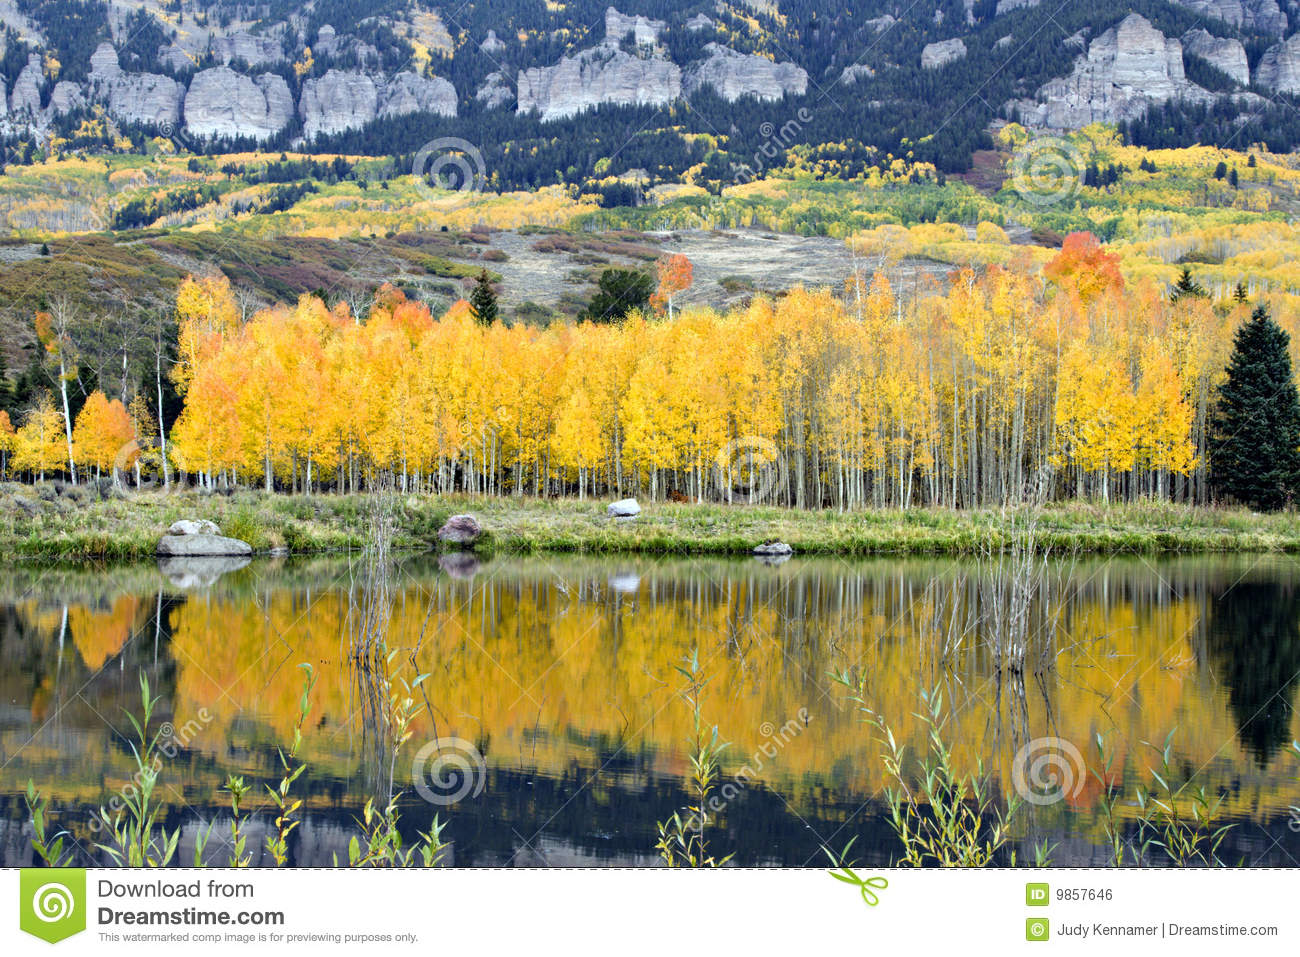 Golden Aspens and reflections